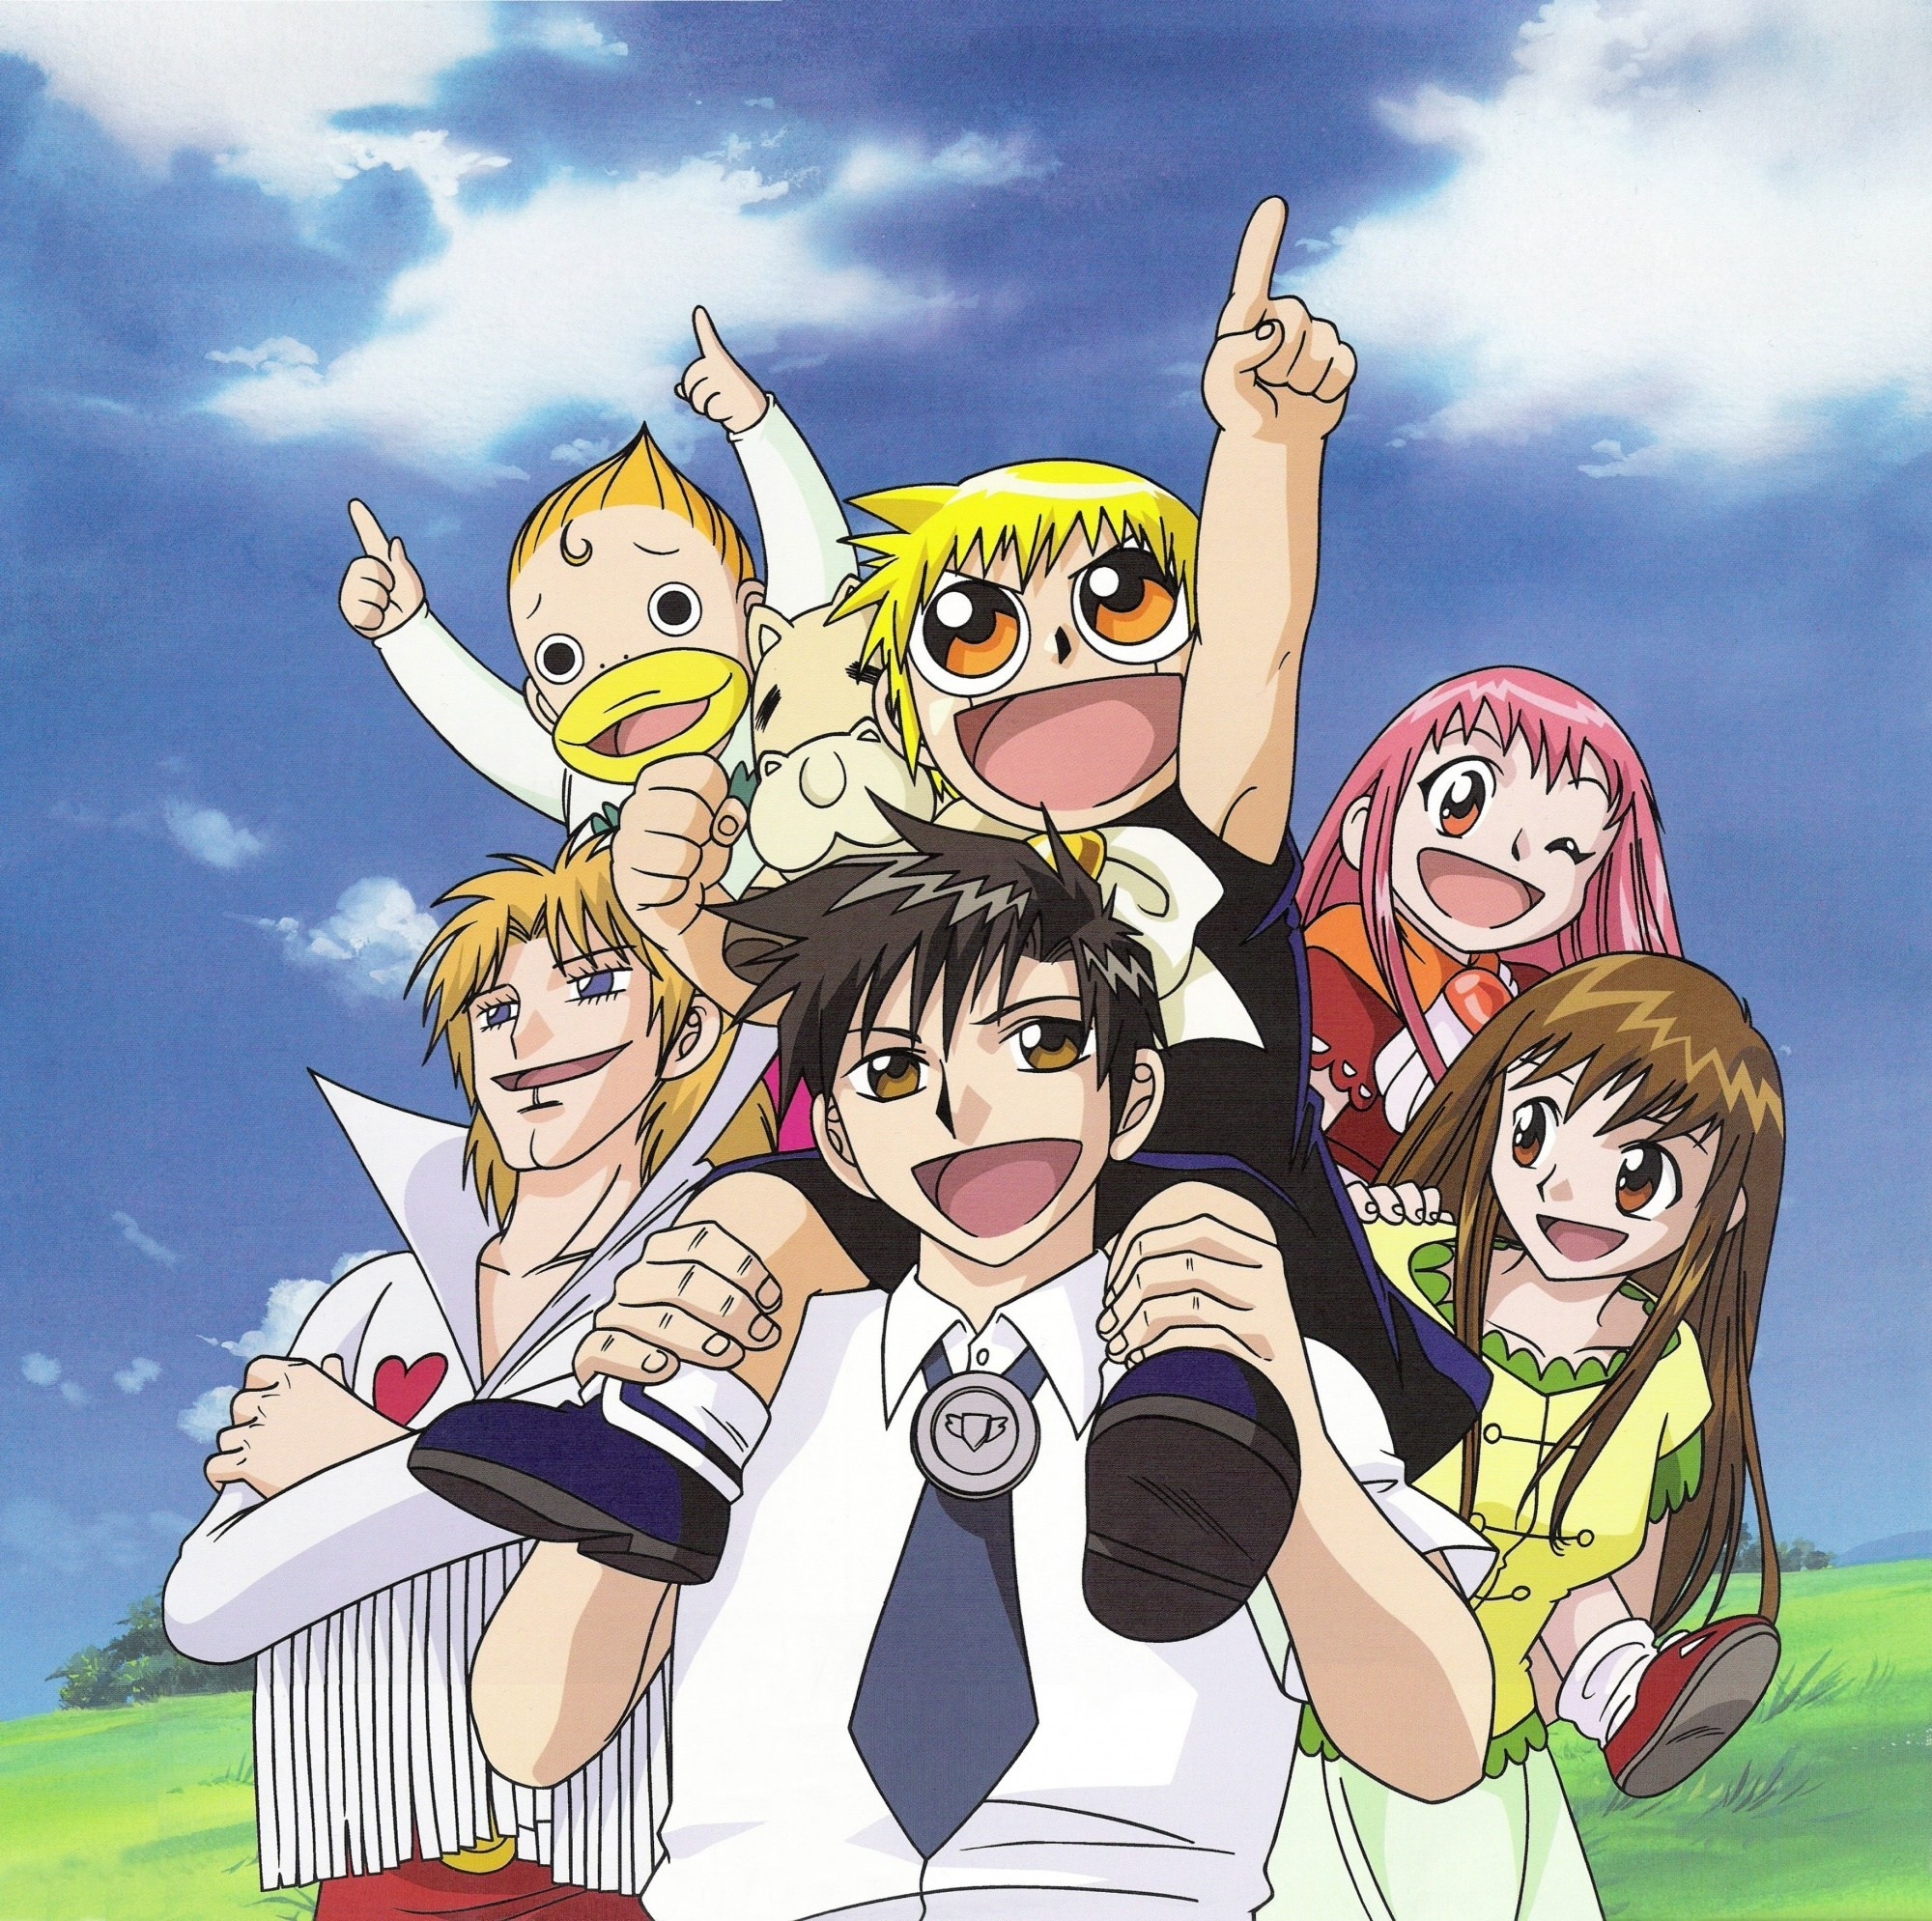 2000x1989 Great Zatch Bell Characters Wallpaper These are High Quality and High  Definition HD Wallpapers For PC